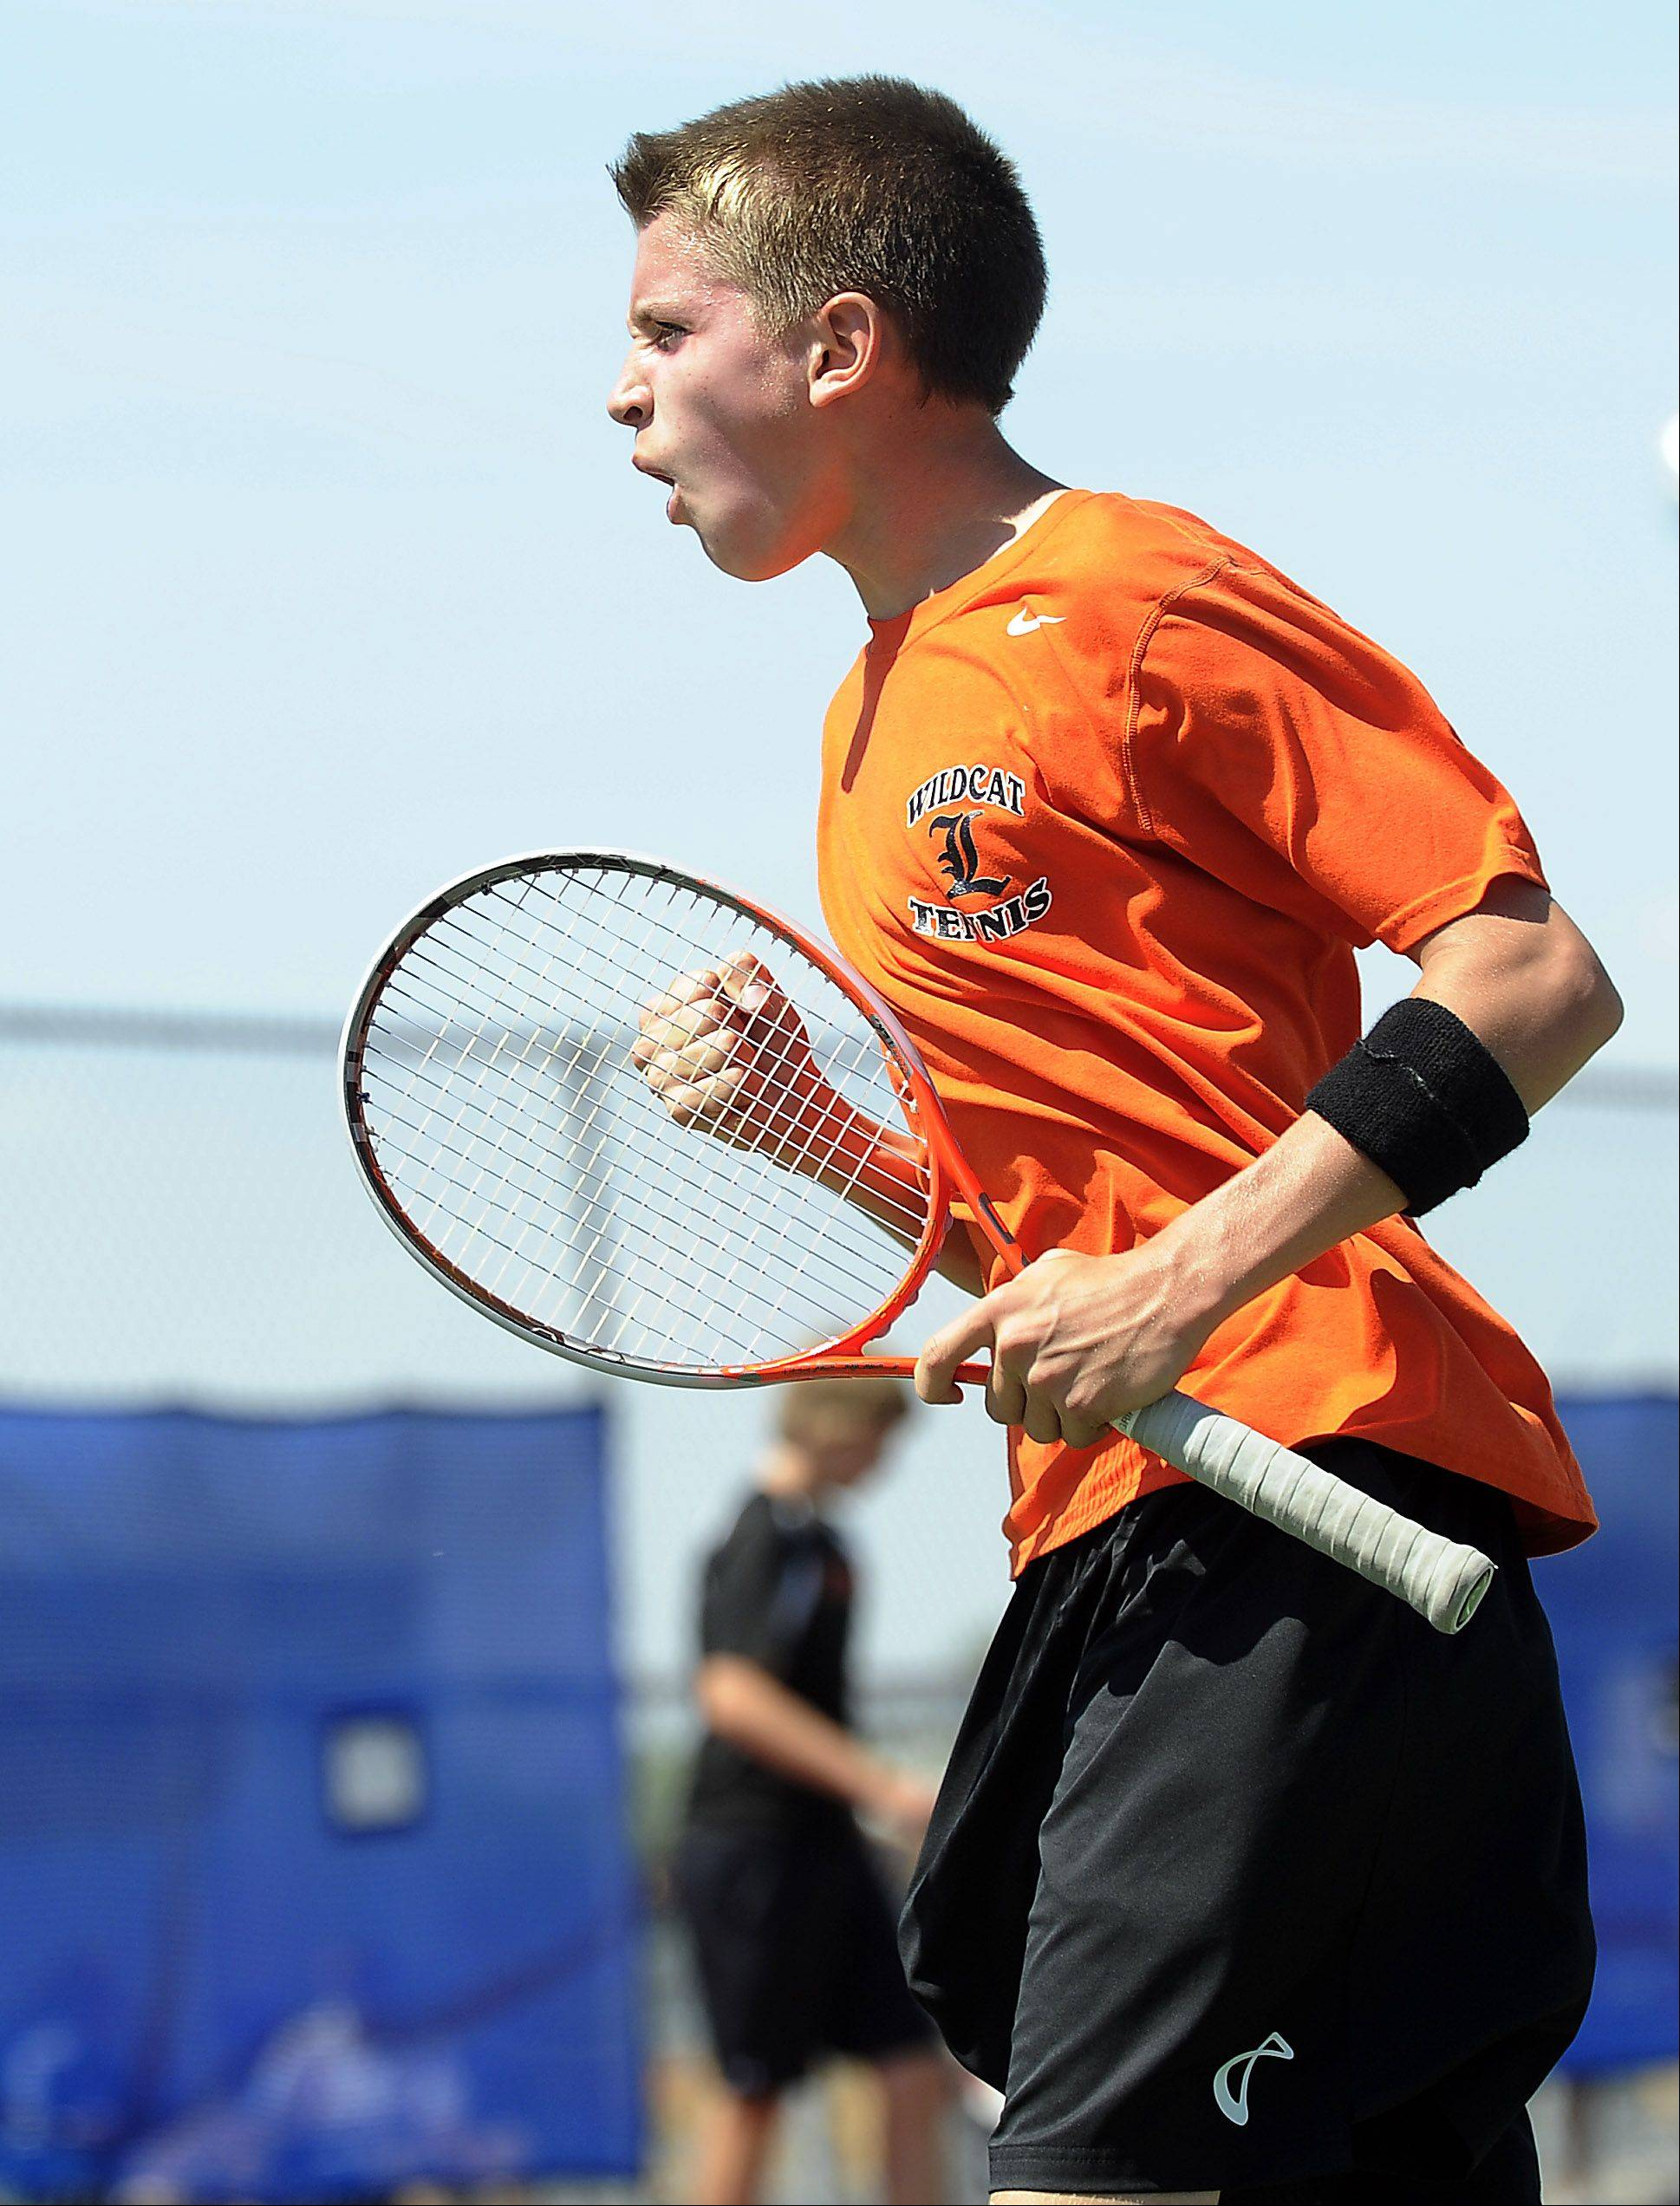 Libertyville's Ben VanDixhorn is pumped after he scored against Rockford's Matt Papke in the boys state tennis match at Hoffman Estates High School on Thursday.